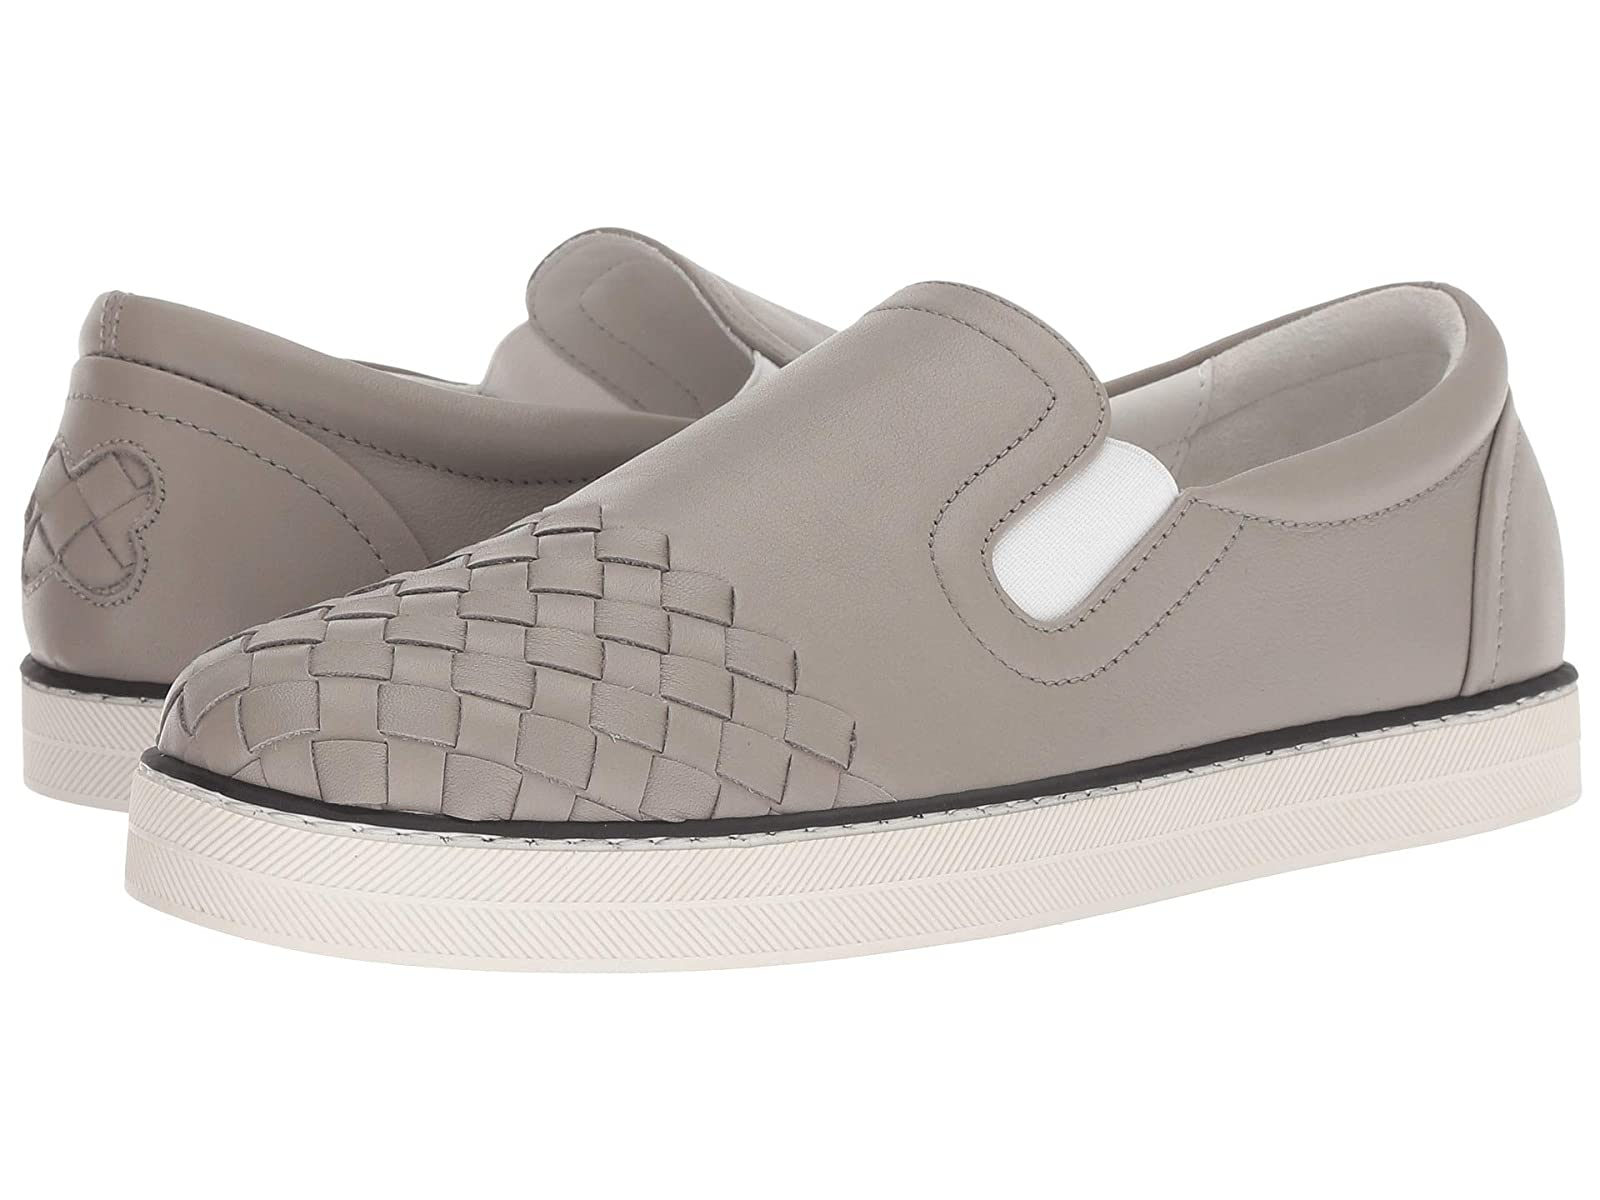 Bottega Veneta Intrecciato Cap Slip-On SneakerAtmospheric grades have affordable shoes